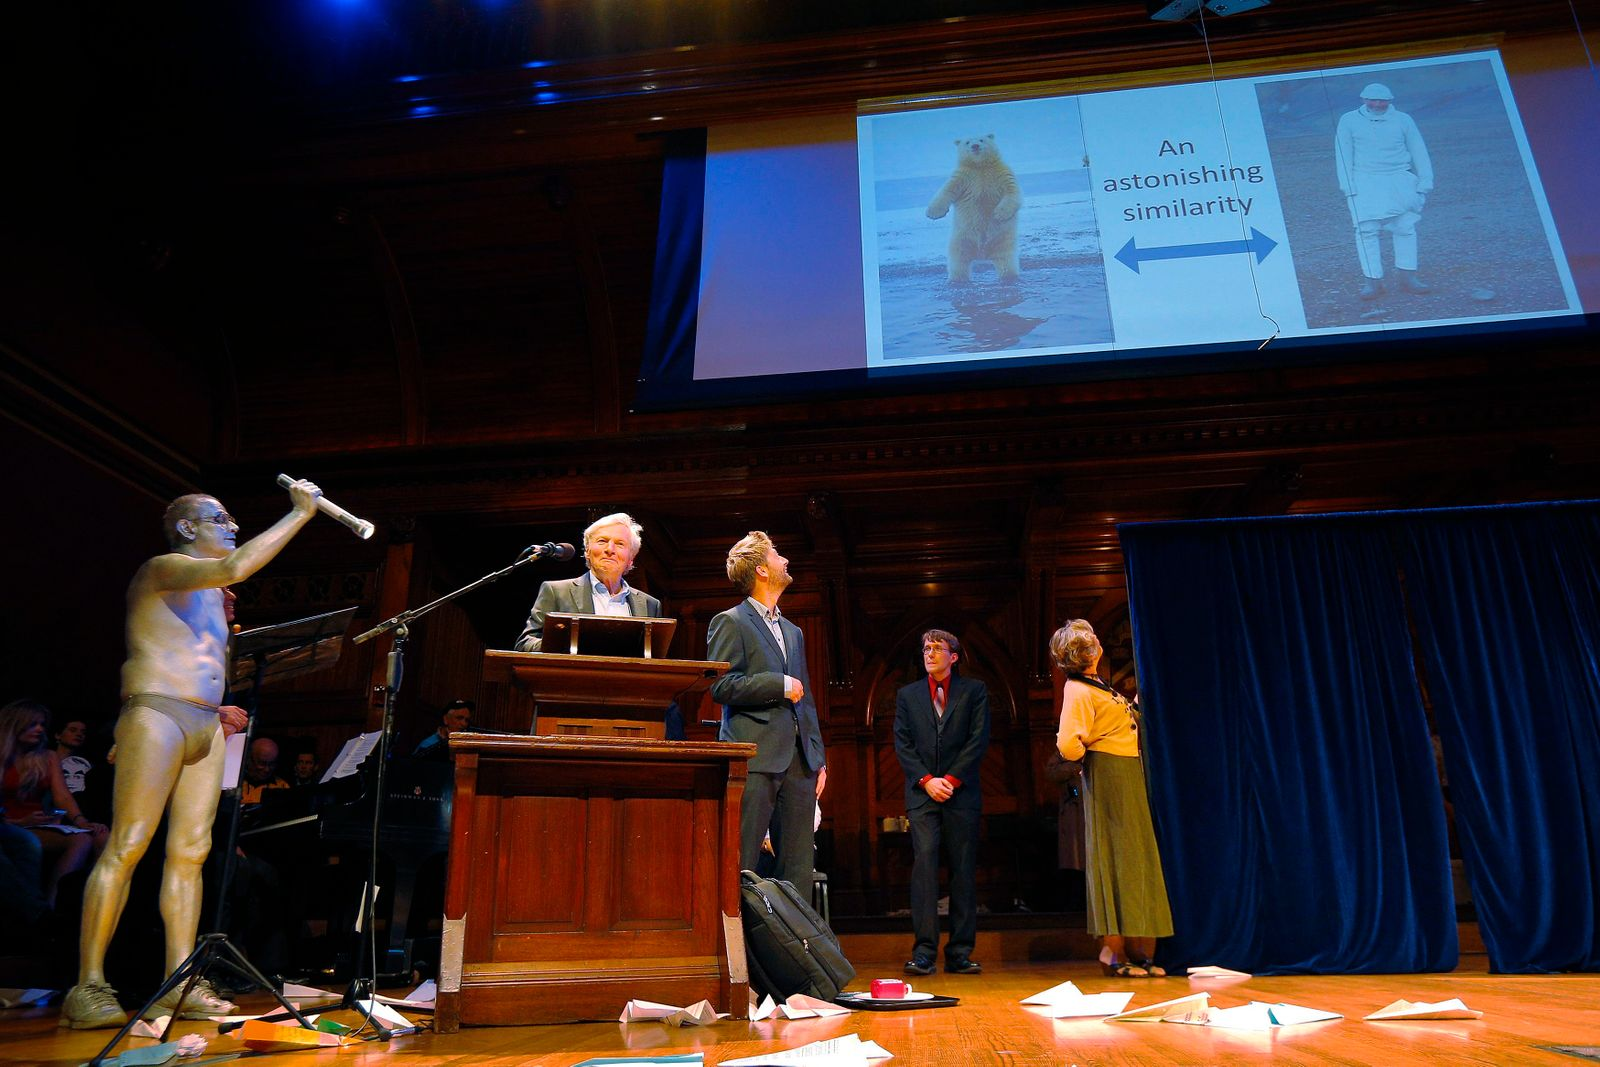 Reimers and Eftestol of Norway accept the Ig Nobel prize for Arctic Science at the 24th First Annual Ig Nobel Prizes awards ceremony at Harvard University in Cambridge